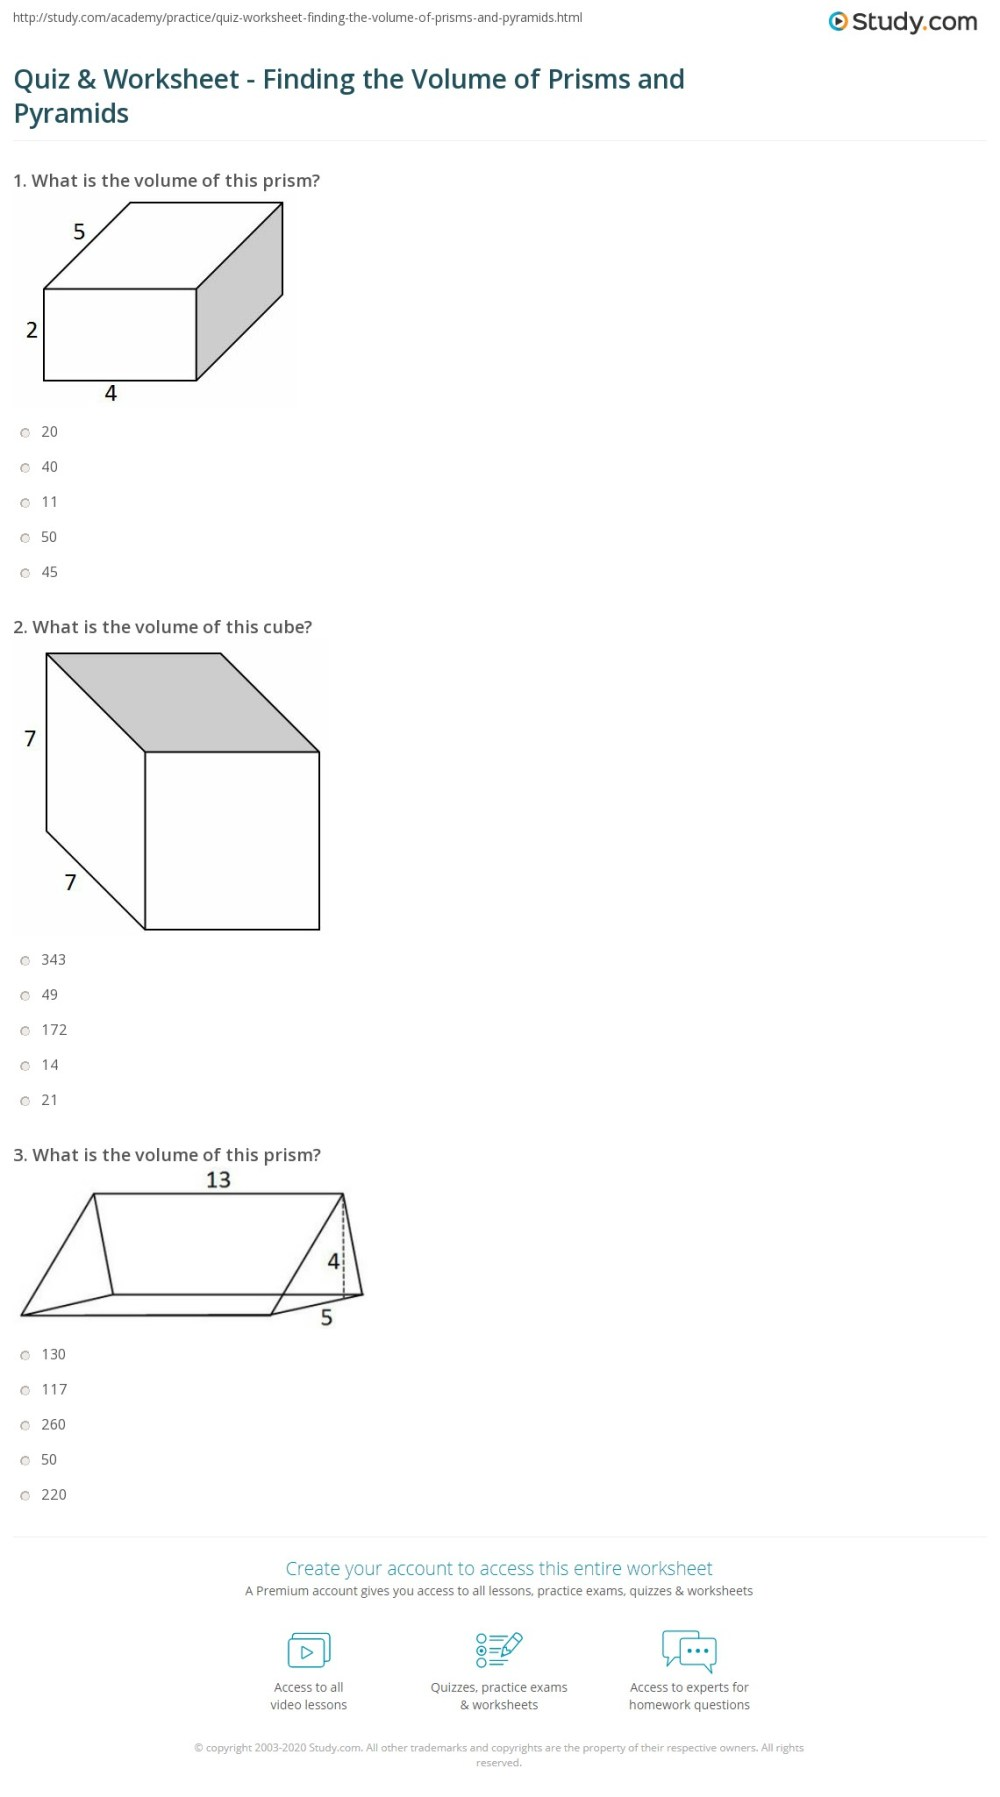 medium resolution of Quiz \u0026 Worksheet - Finding the Volume of Prisms and Pyramids   Study.com